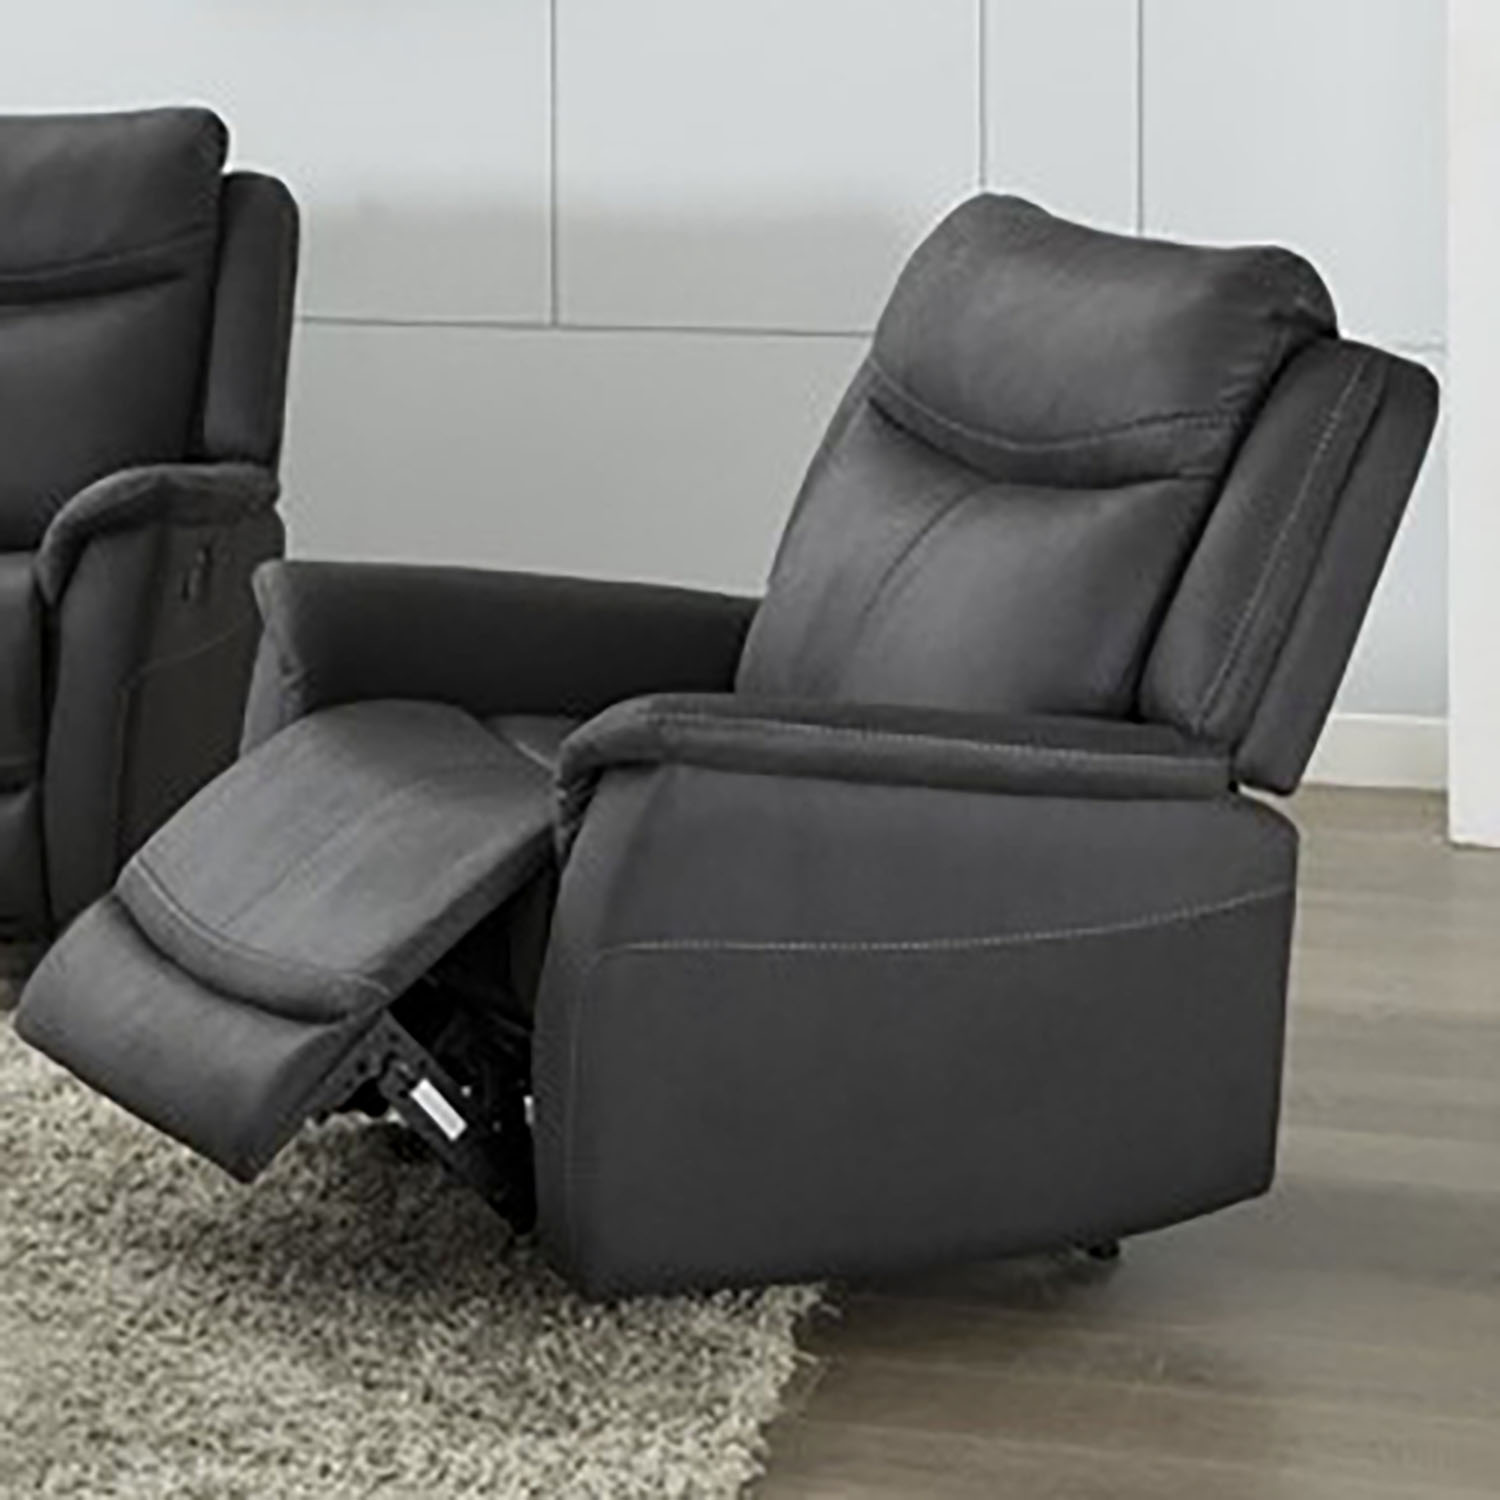 Ancona Manual Recliner - Slate